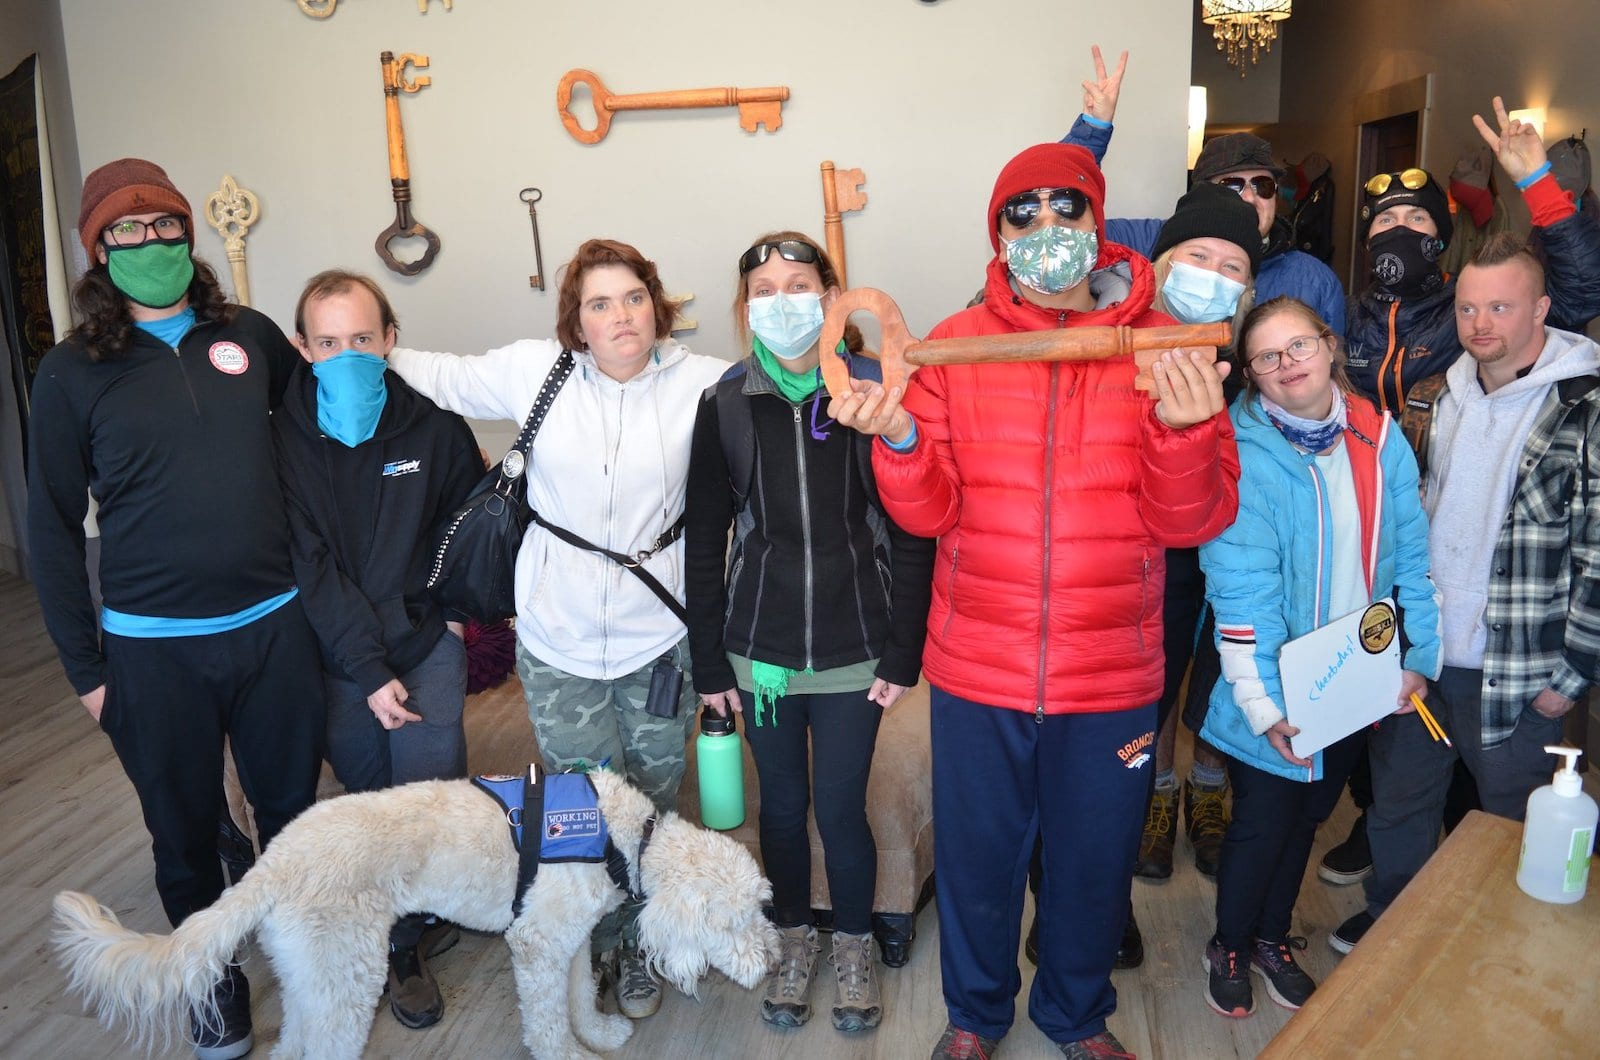 Crooked Key Live Escape Games in Steamboat Springs, CO